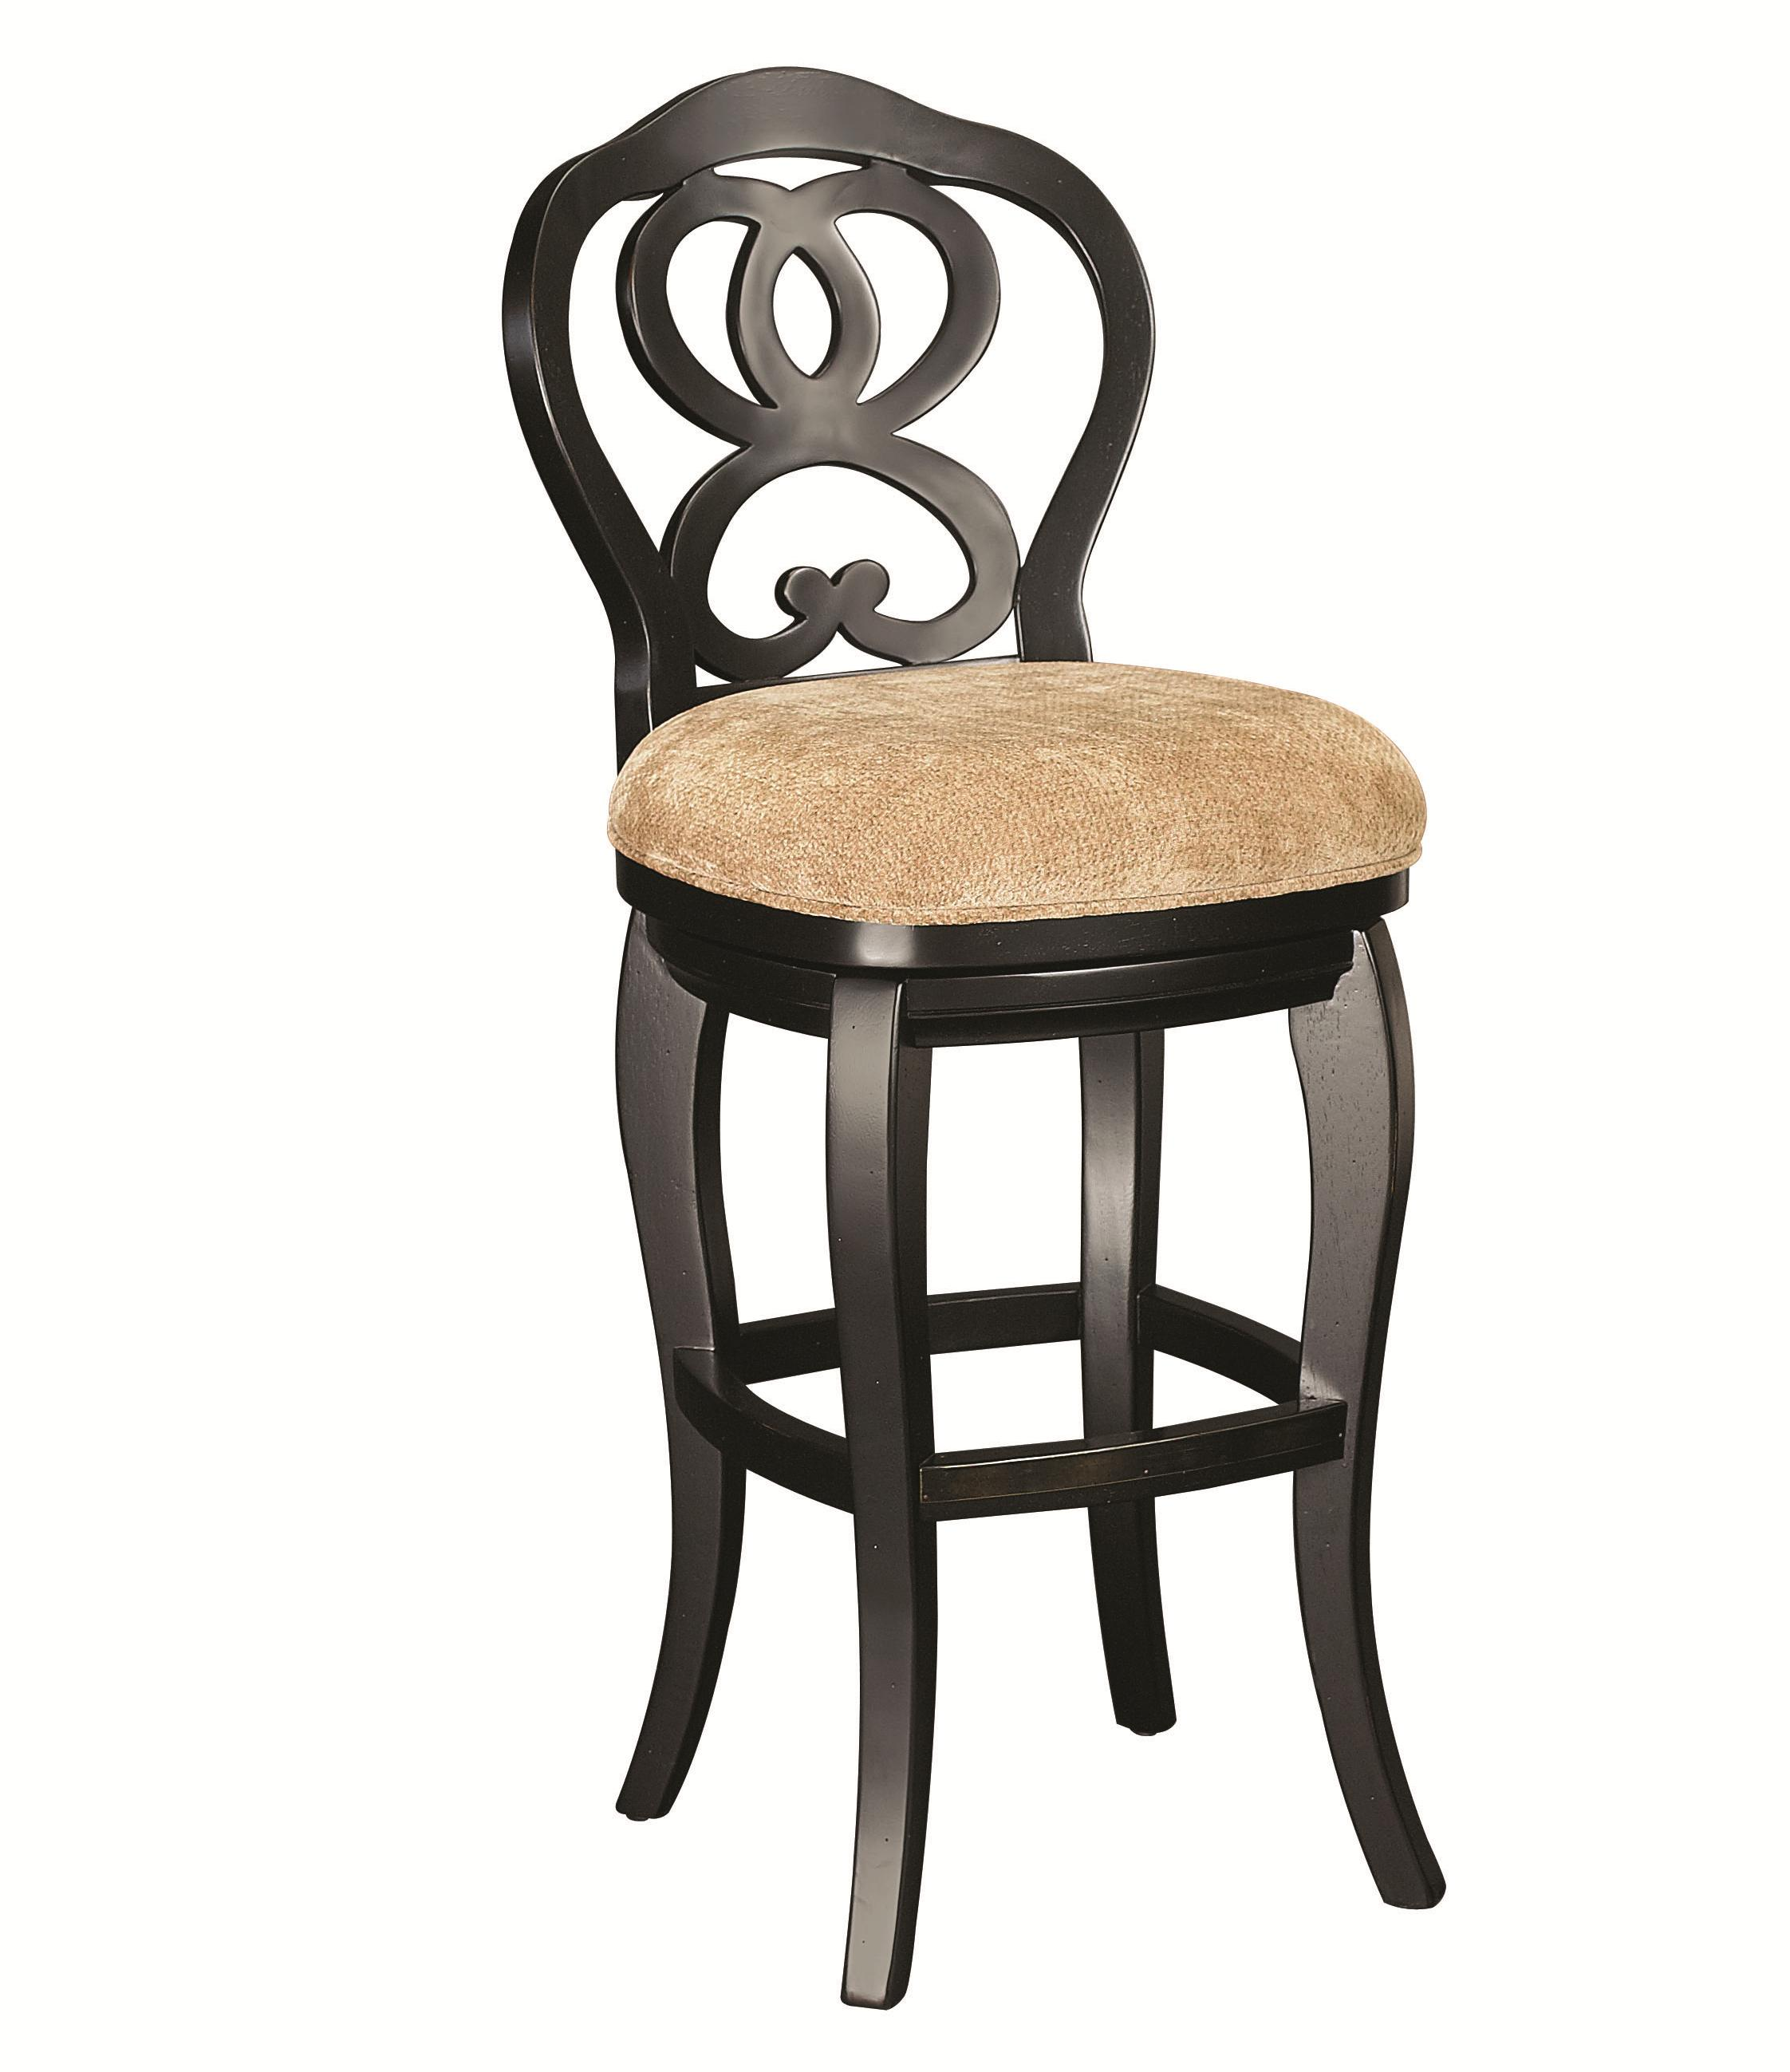 Hammary Hidden Treasures Barstool - Item Number: T73185-22